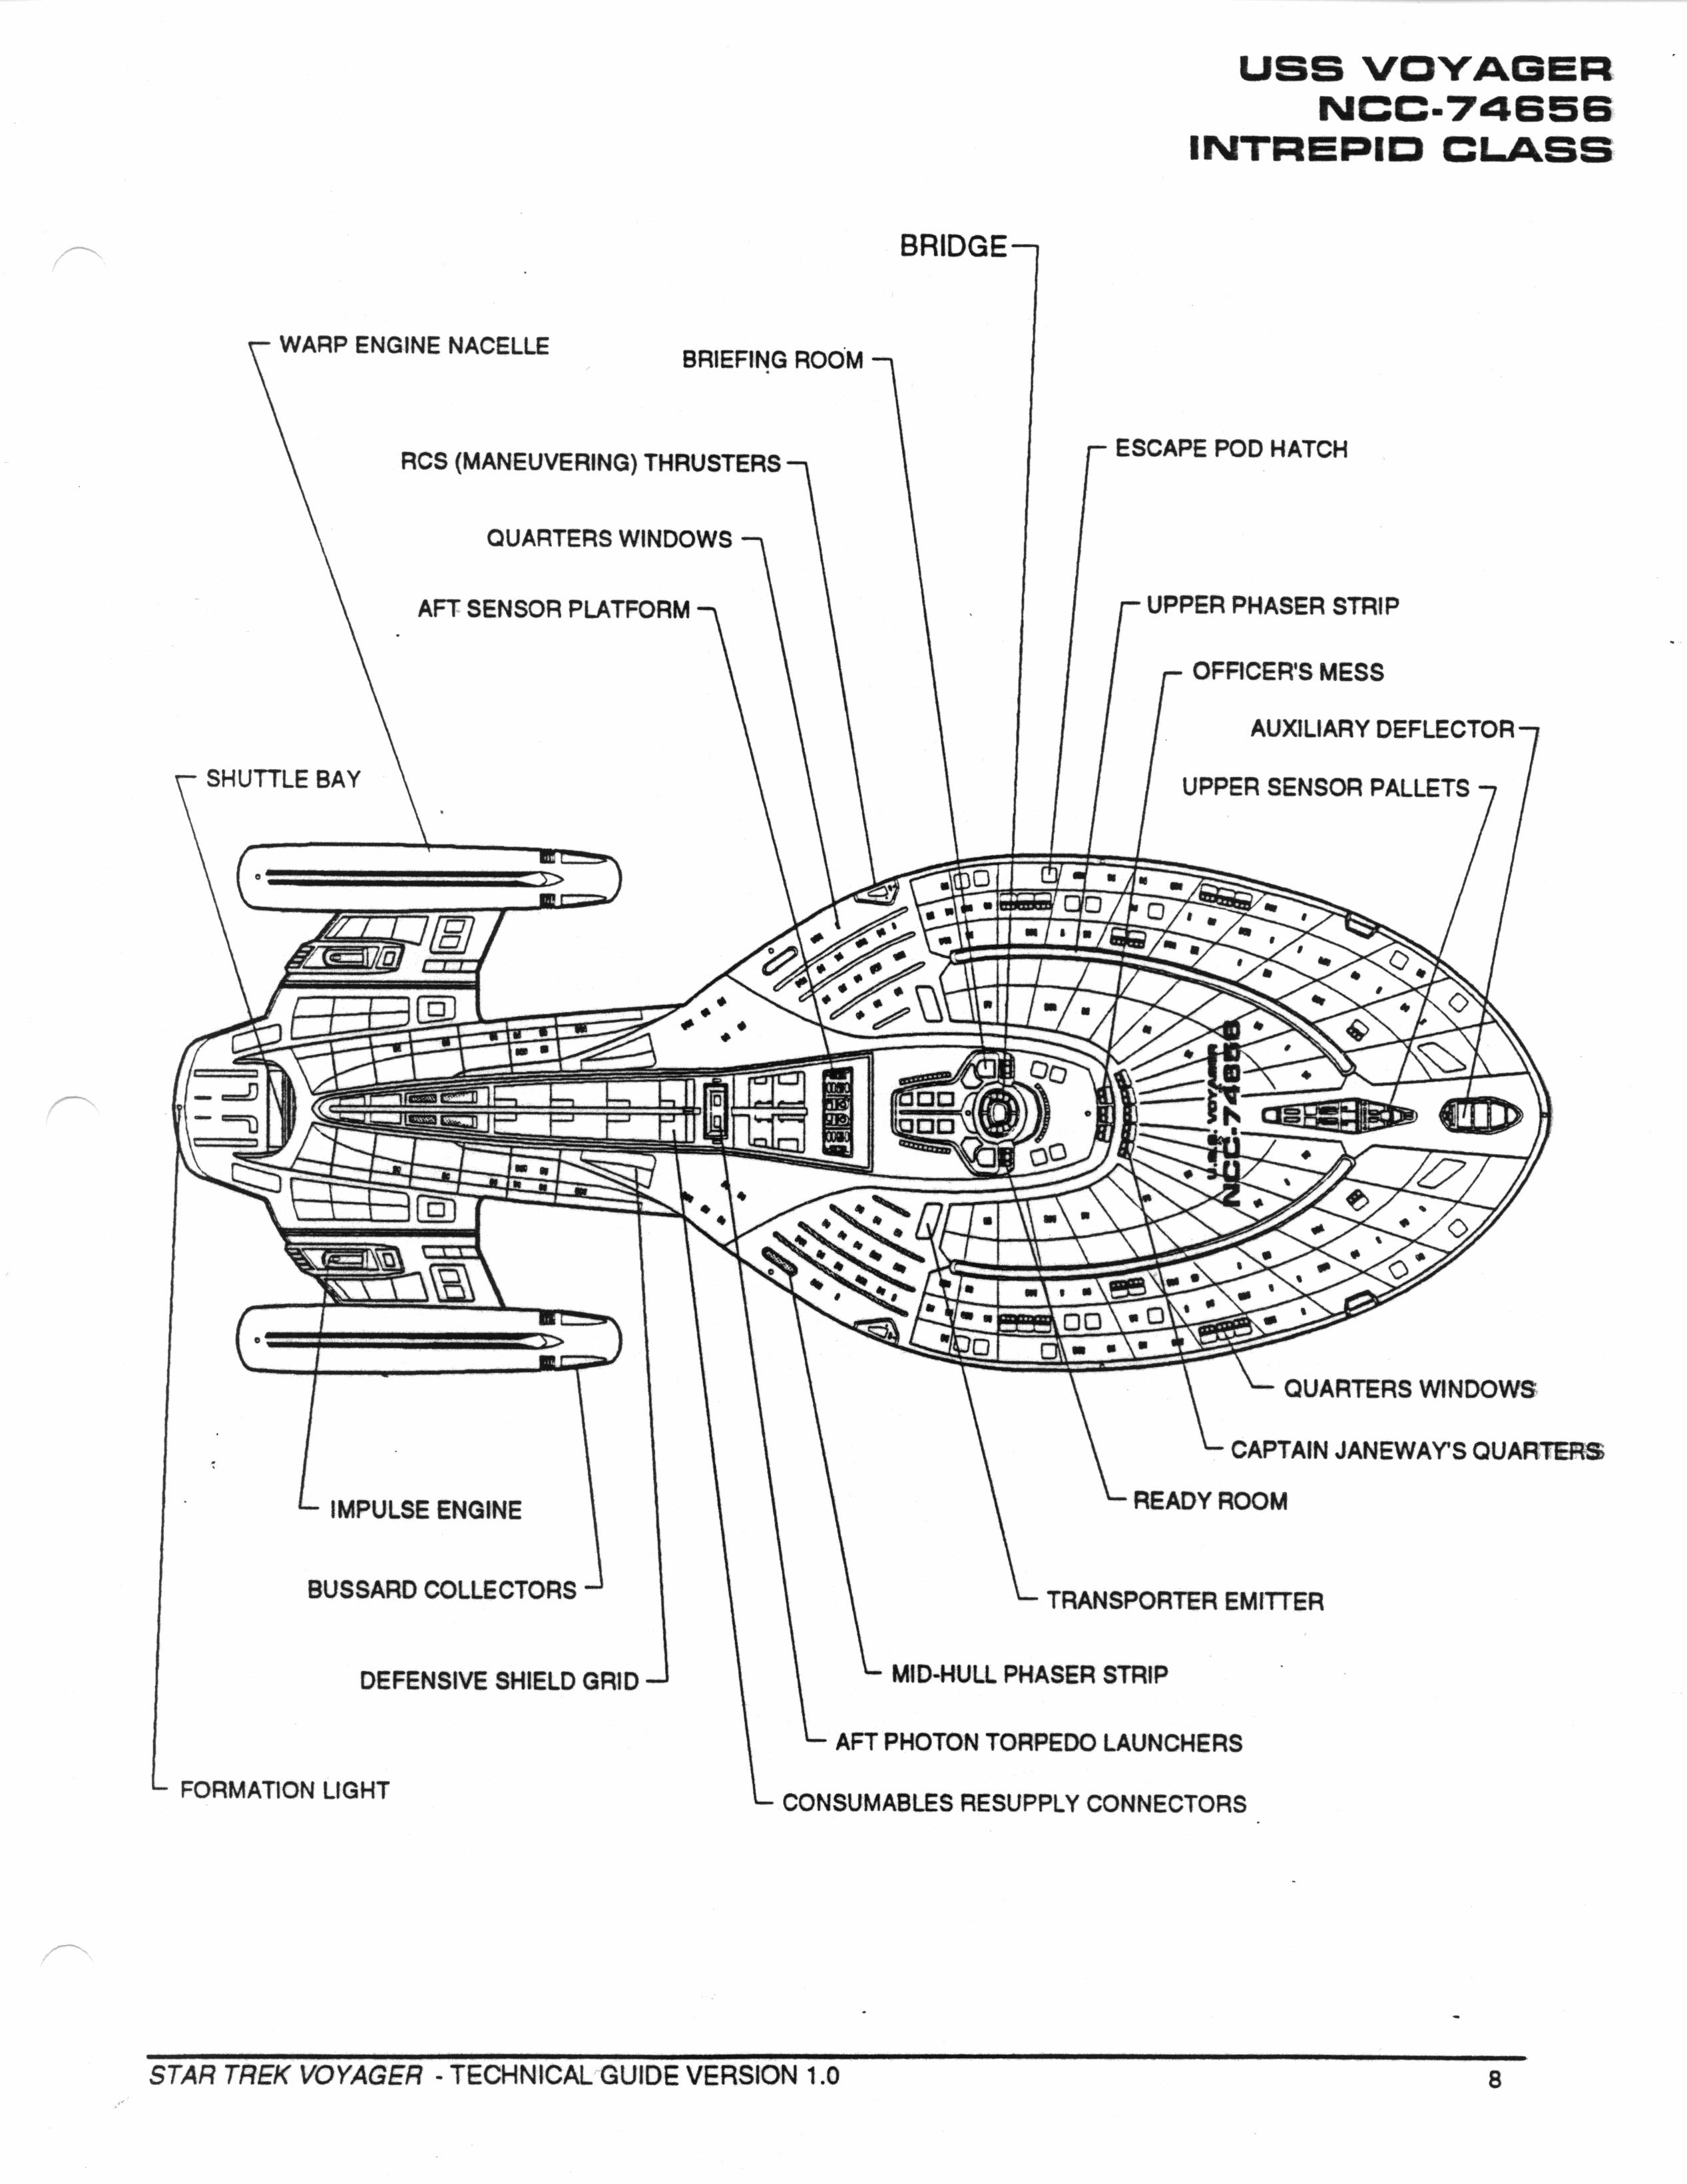 01 F150 Fuse Diagram Cruisecontrol Opinions About Wiring 06 Panel Star Trek Voyager Aerowing Schematics Basic Guide 2006 Ford F 150 Xl Box 1997